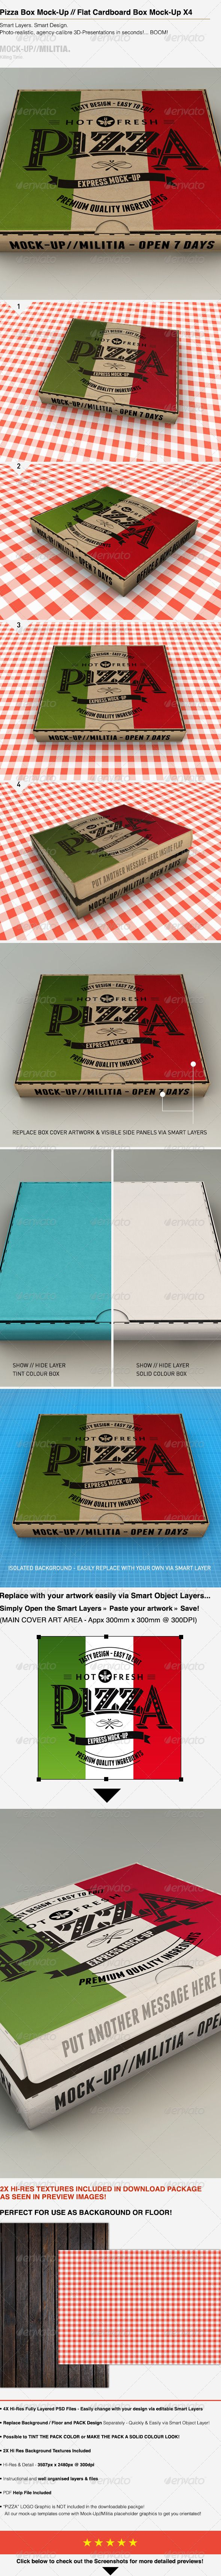 Pizza Box Mock-Up | Plain Cardboard Box Mockup - Miscellaneous Packaging